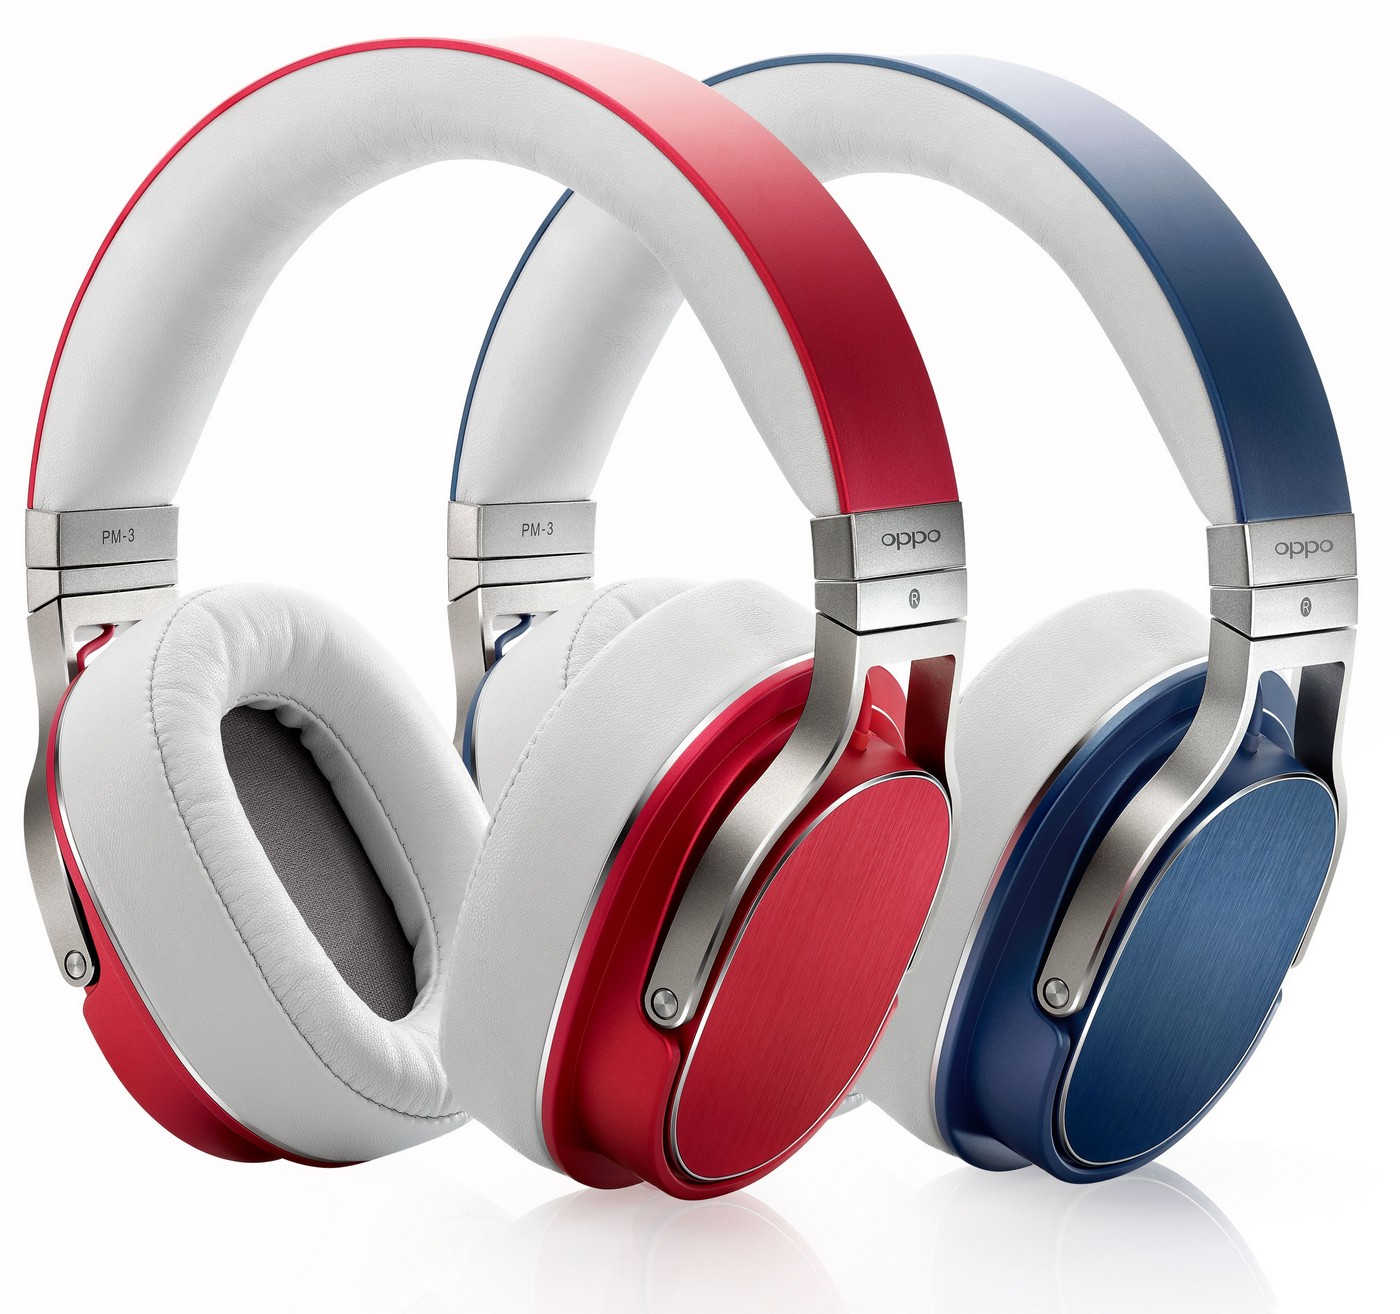 PM-3_Red&Blue